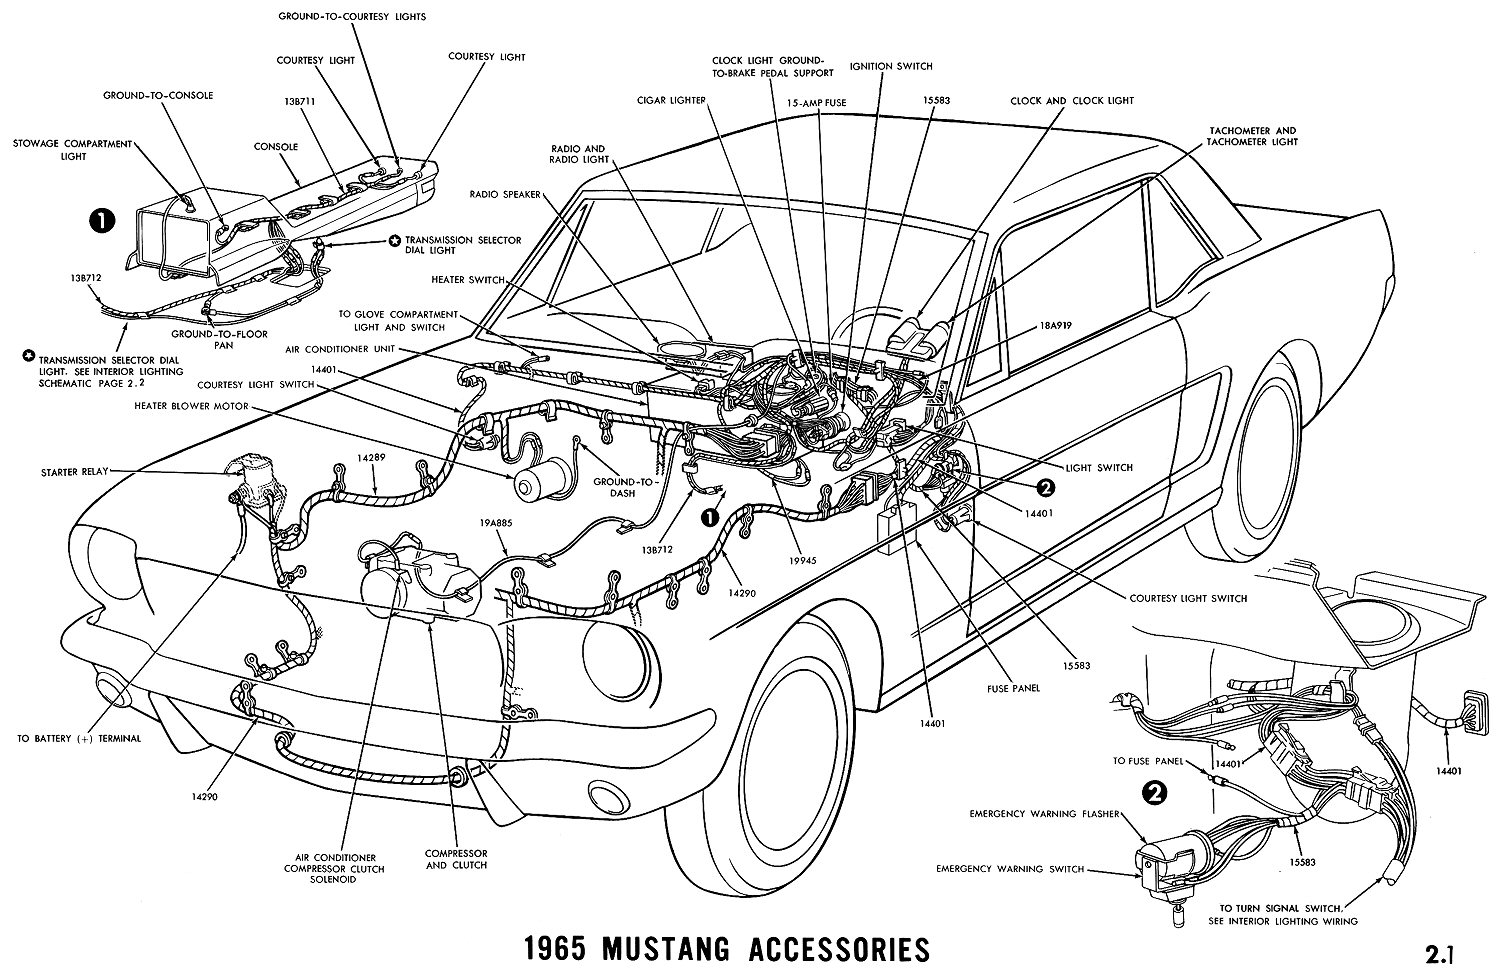 65 mustang accesories 1965 mustang accesories diagram fox body fuse box location at crackthecode.co